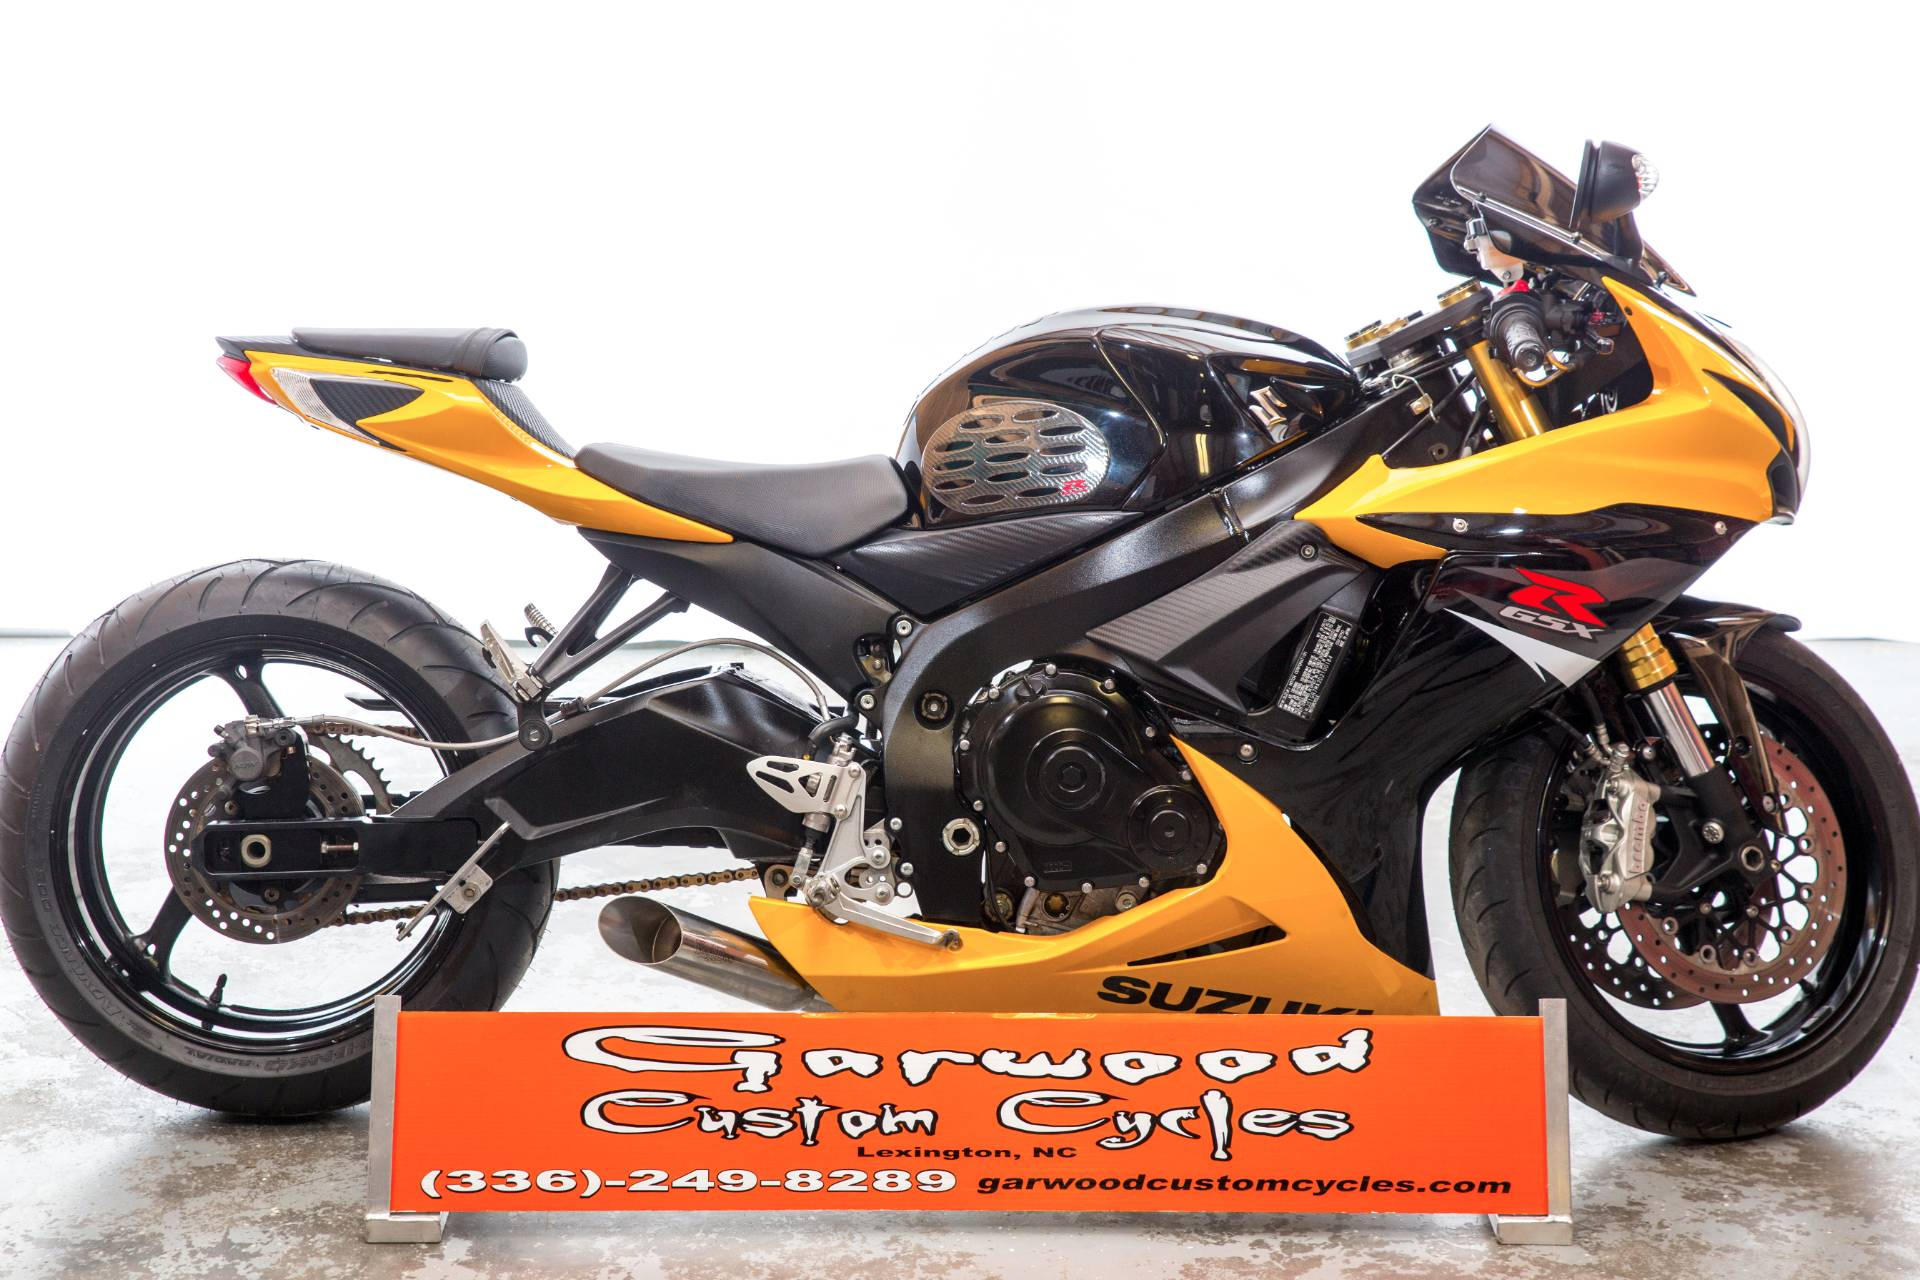 Used 2013 Suzuki GSXR750 Motorcycles in Lexington, NC | Stock Number ...